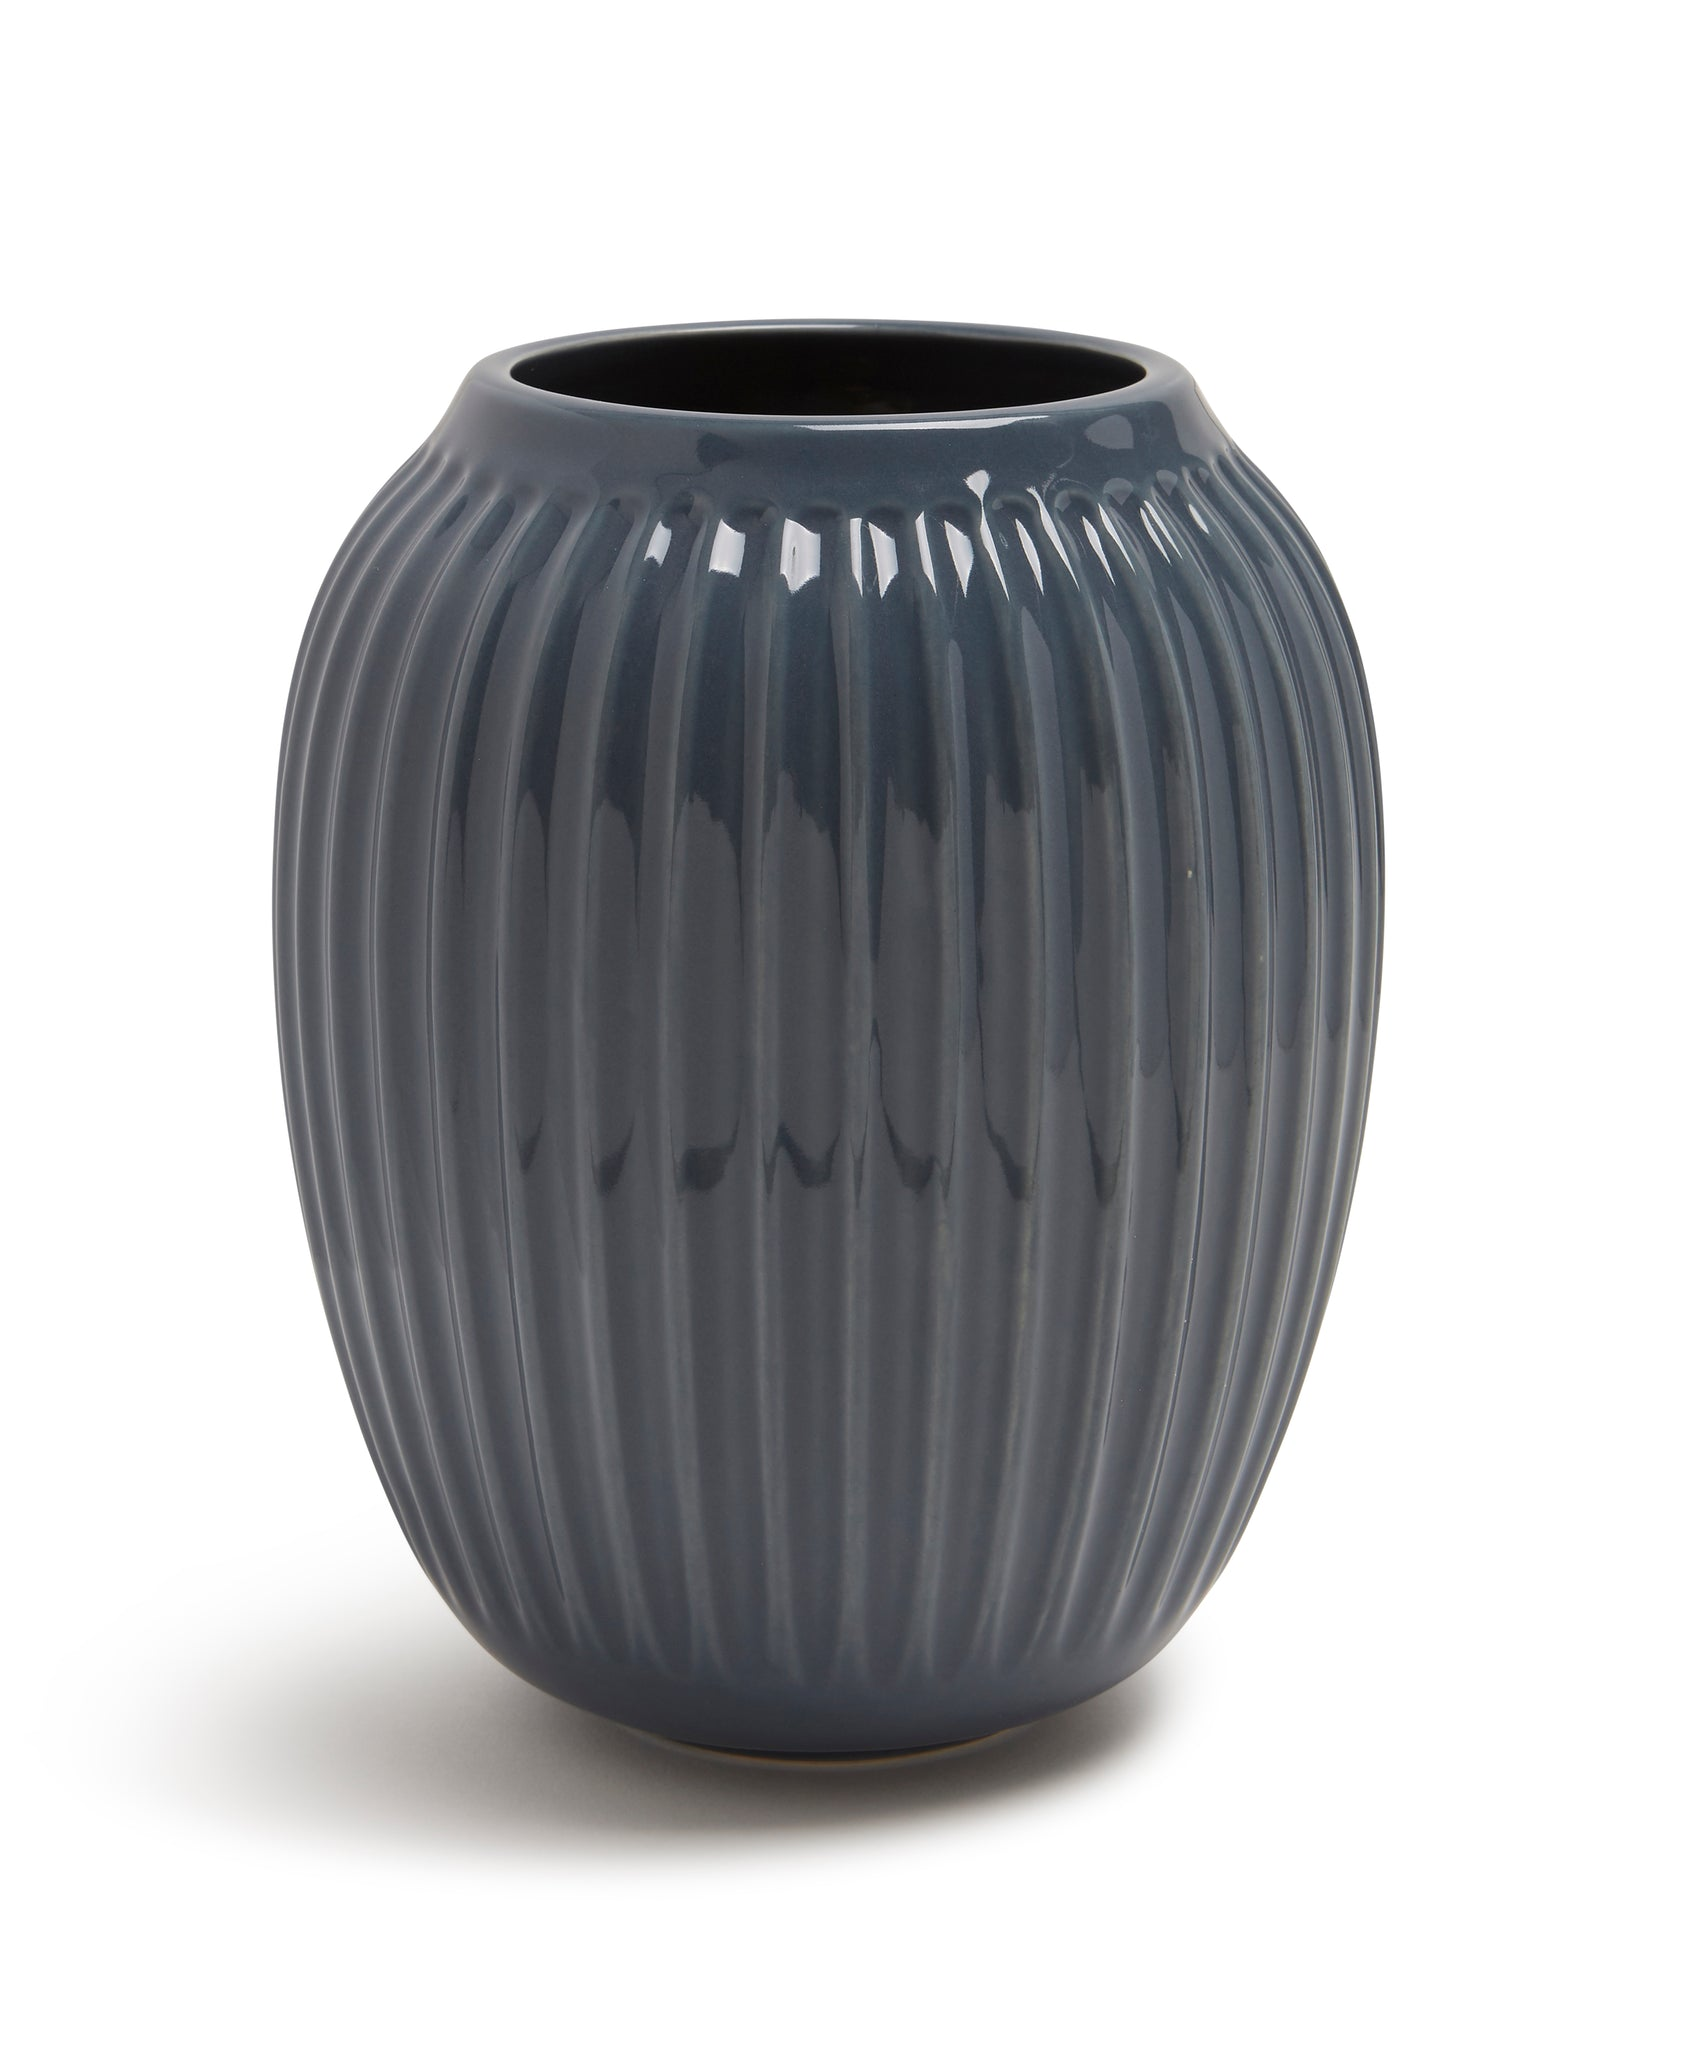 Hammershøi Vase 200mm (Anthracite) by Kähler